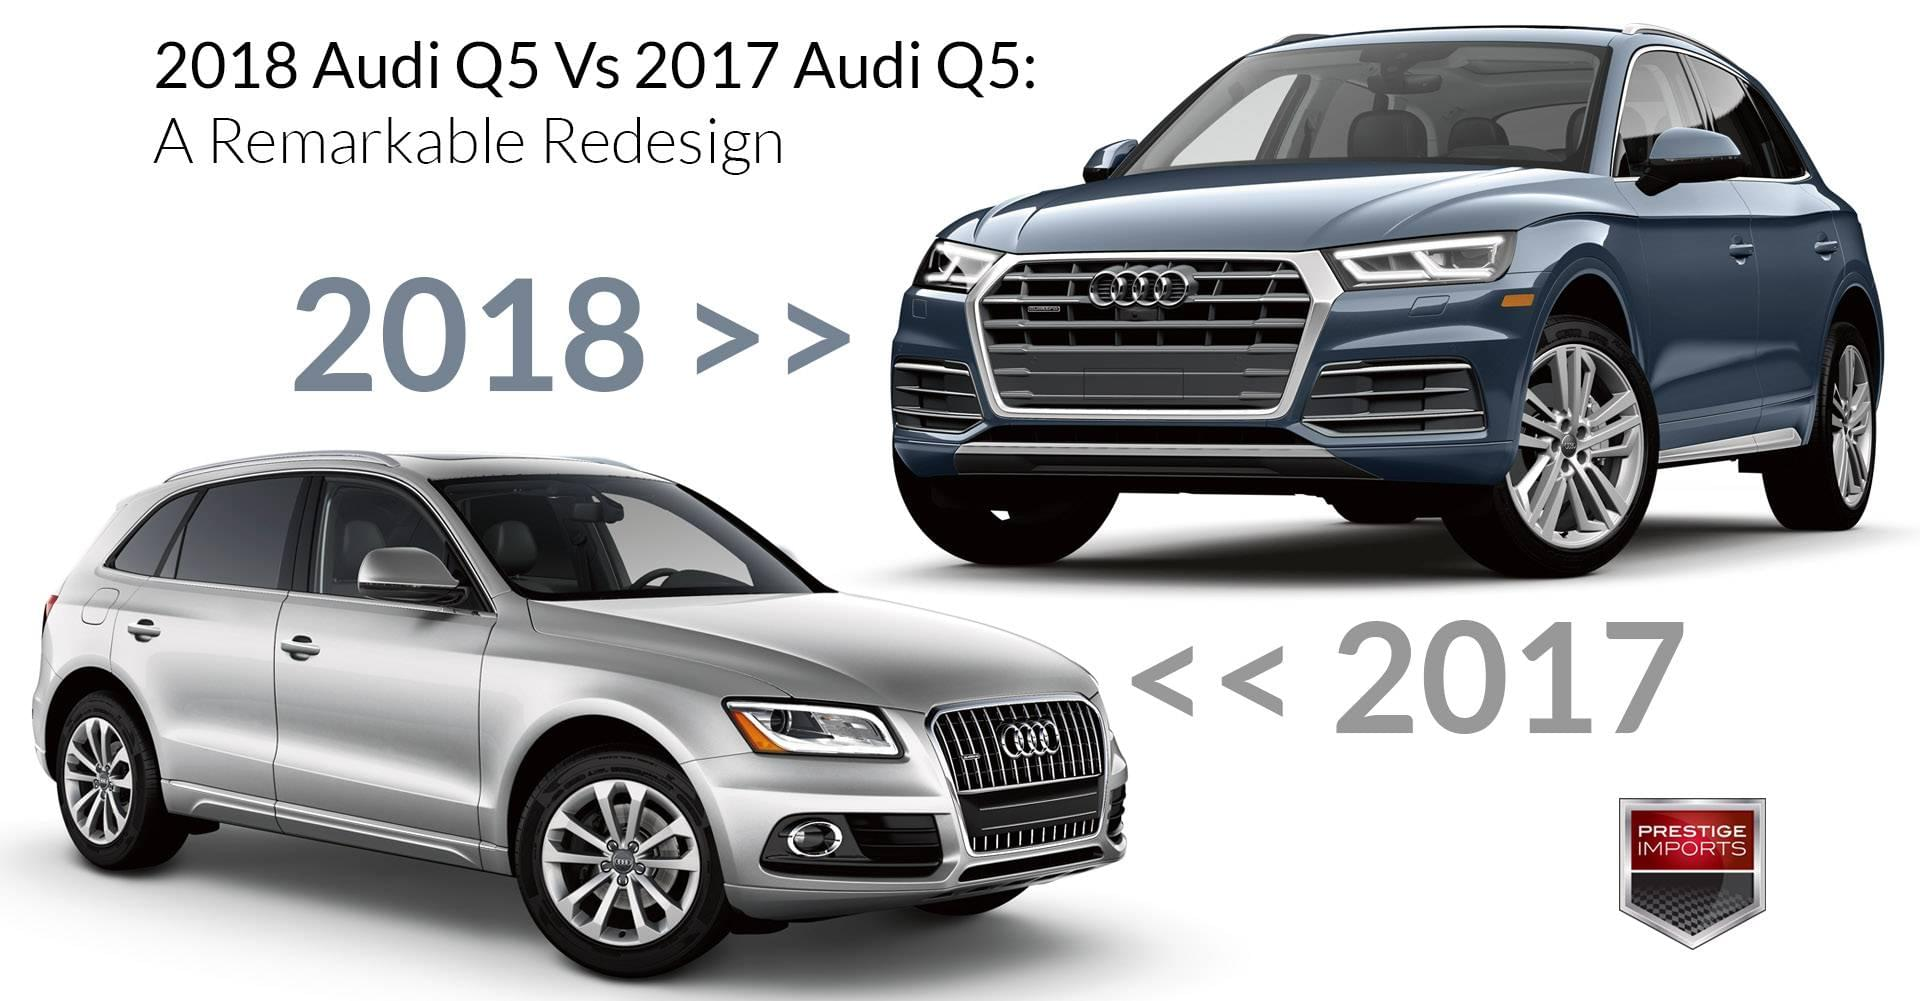 2018 Audi Q5 Vs 2017 Audi Q5 A Remarkable Redesign